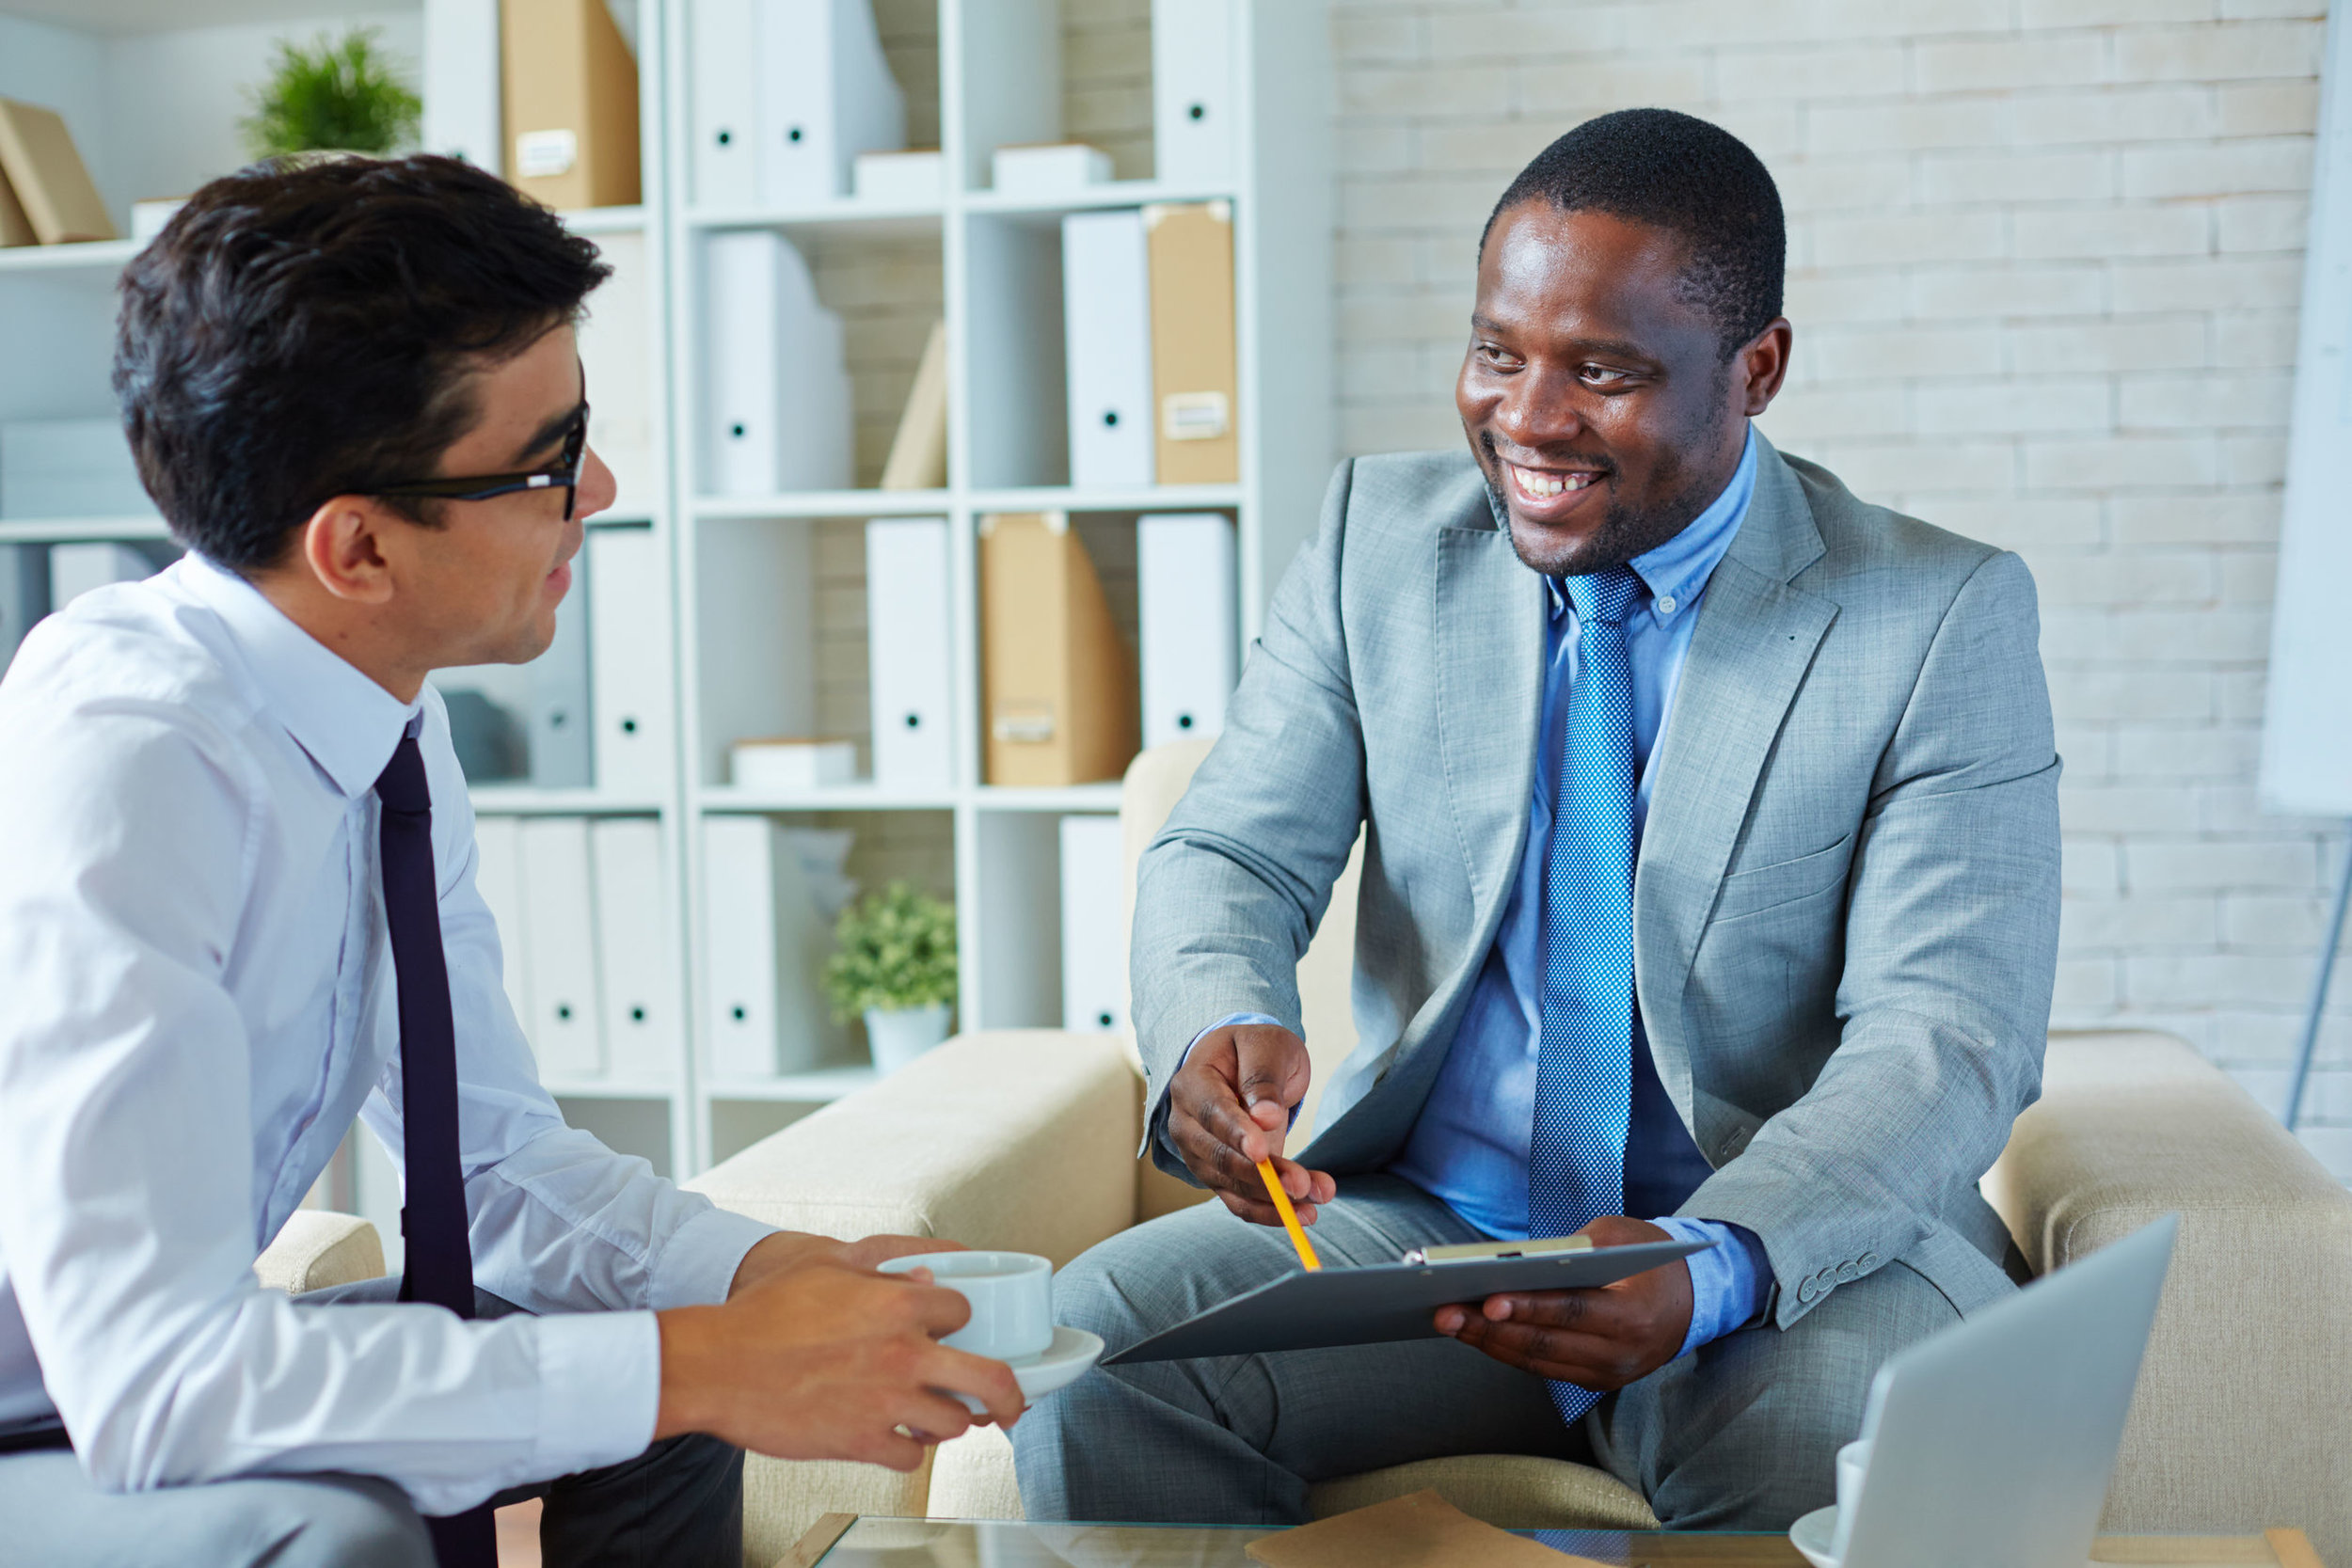 Many negotiators end up in management or leadership roles because of their skills with people.